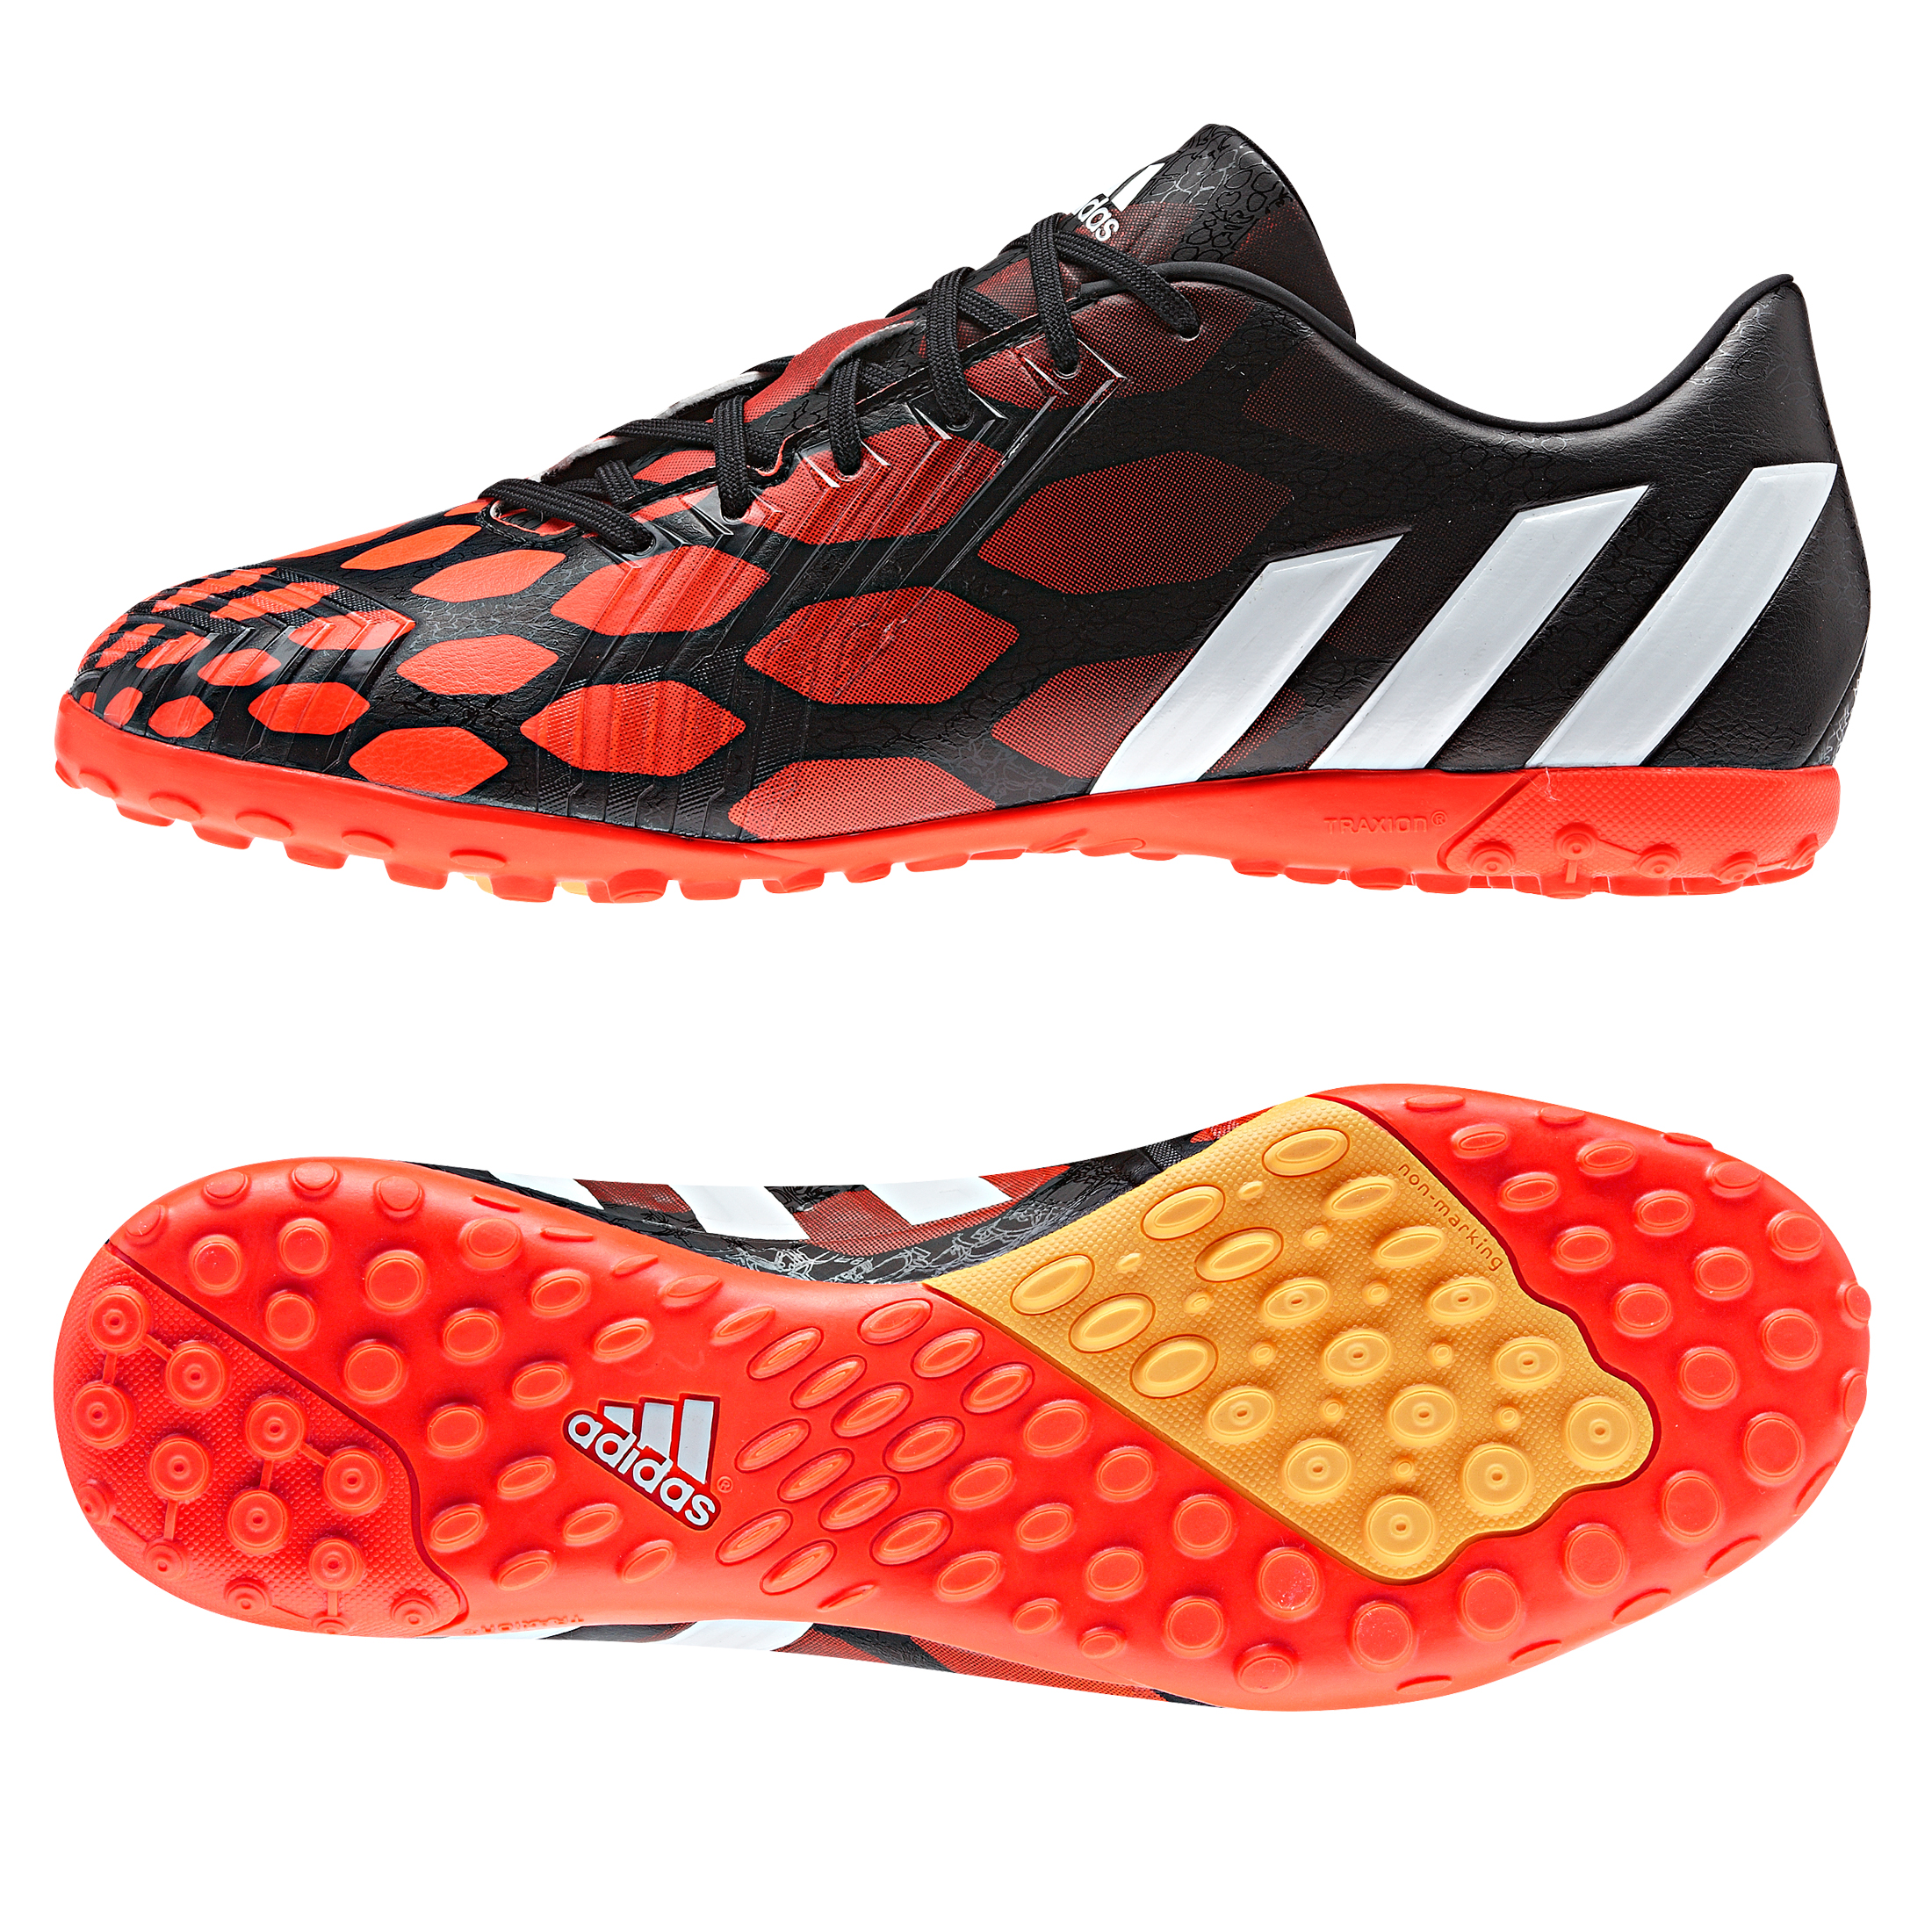 Adidas Predator Absolado Instinct Astroturf Trainers Black